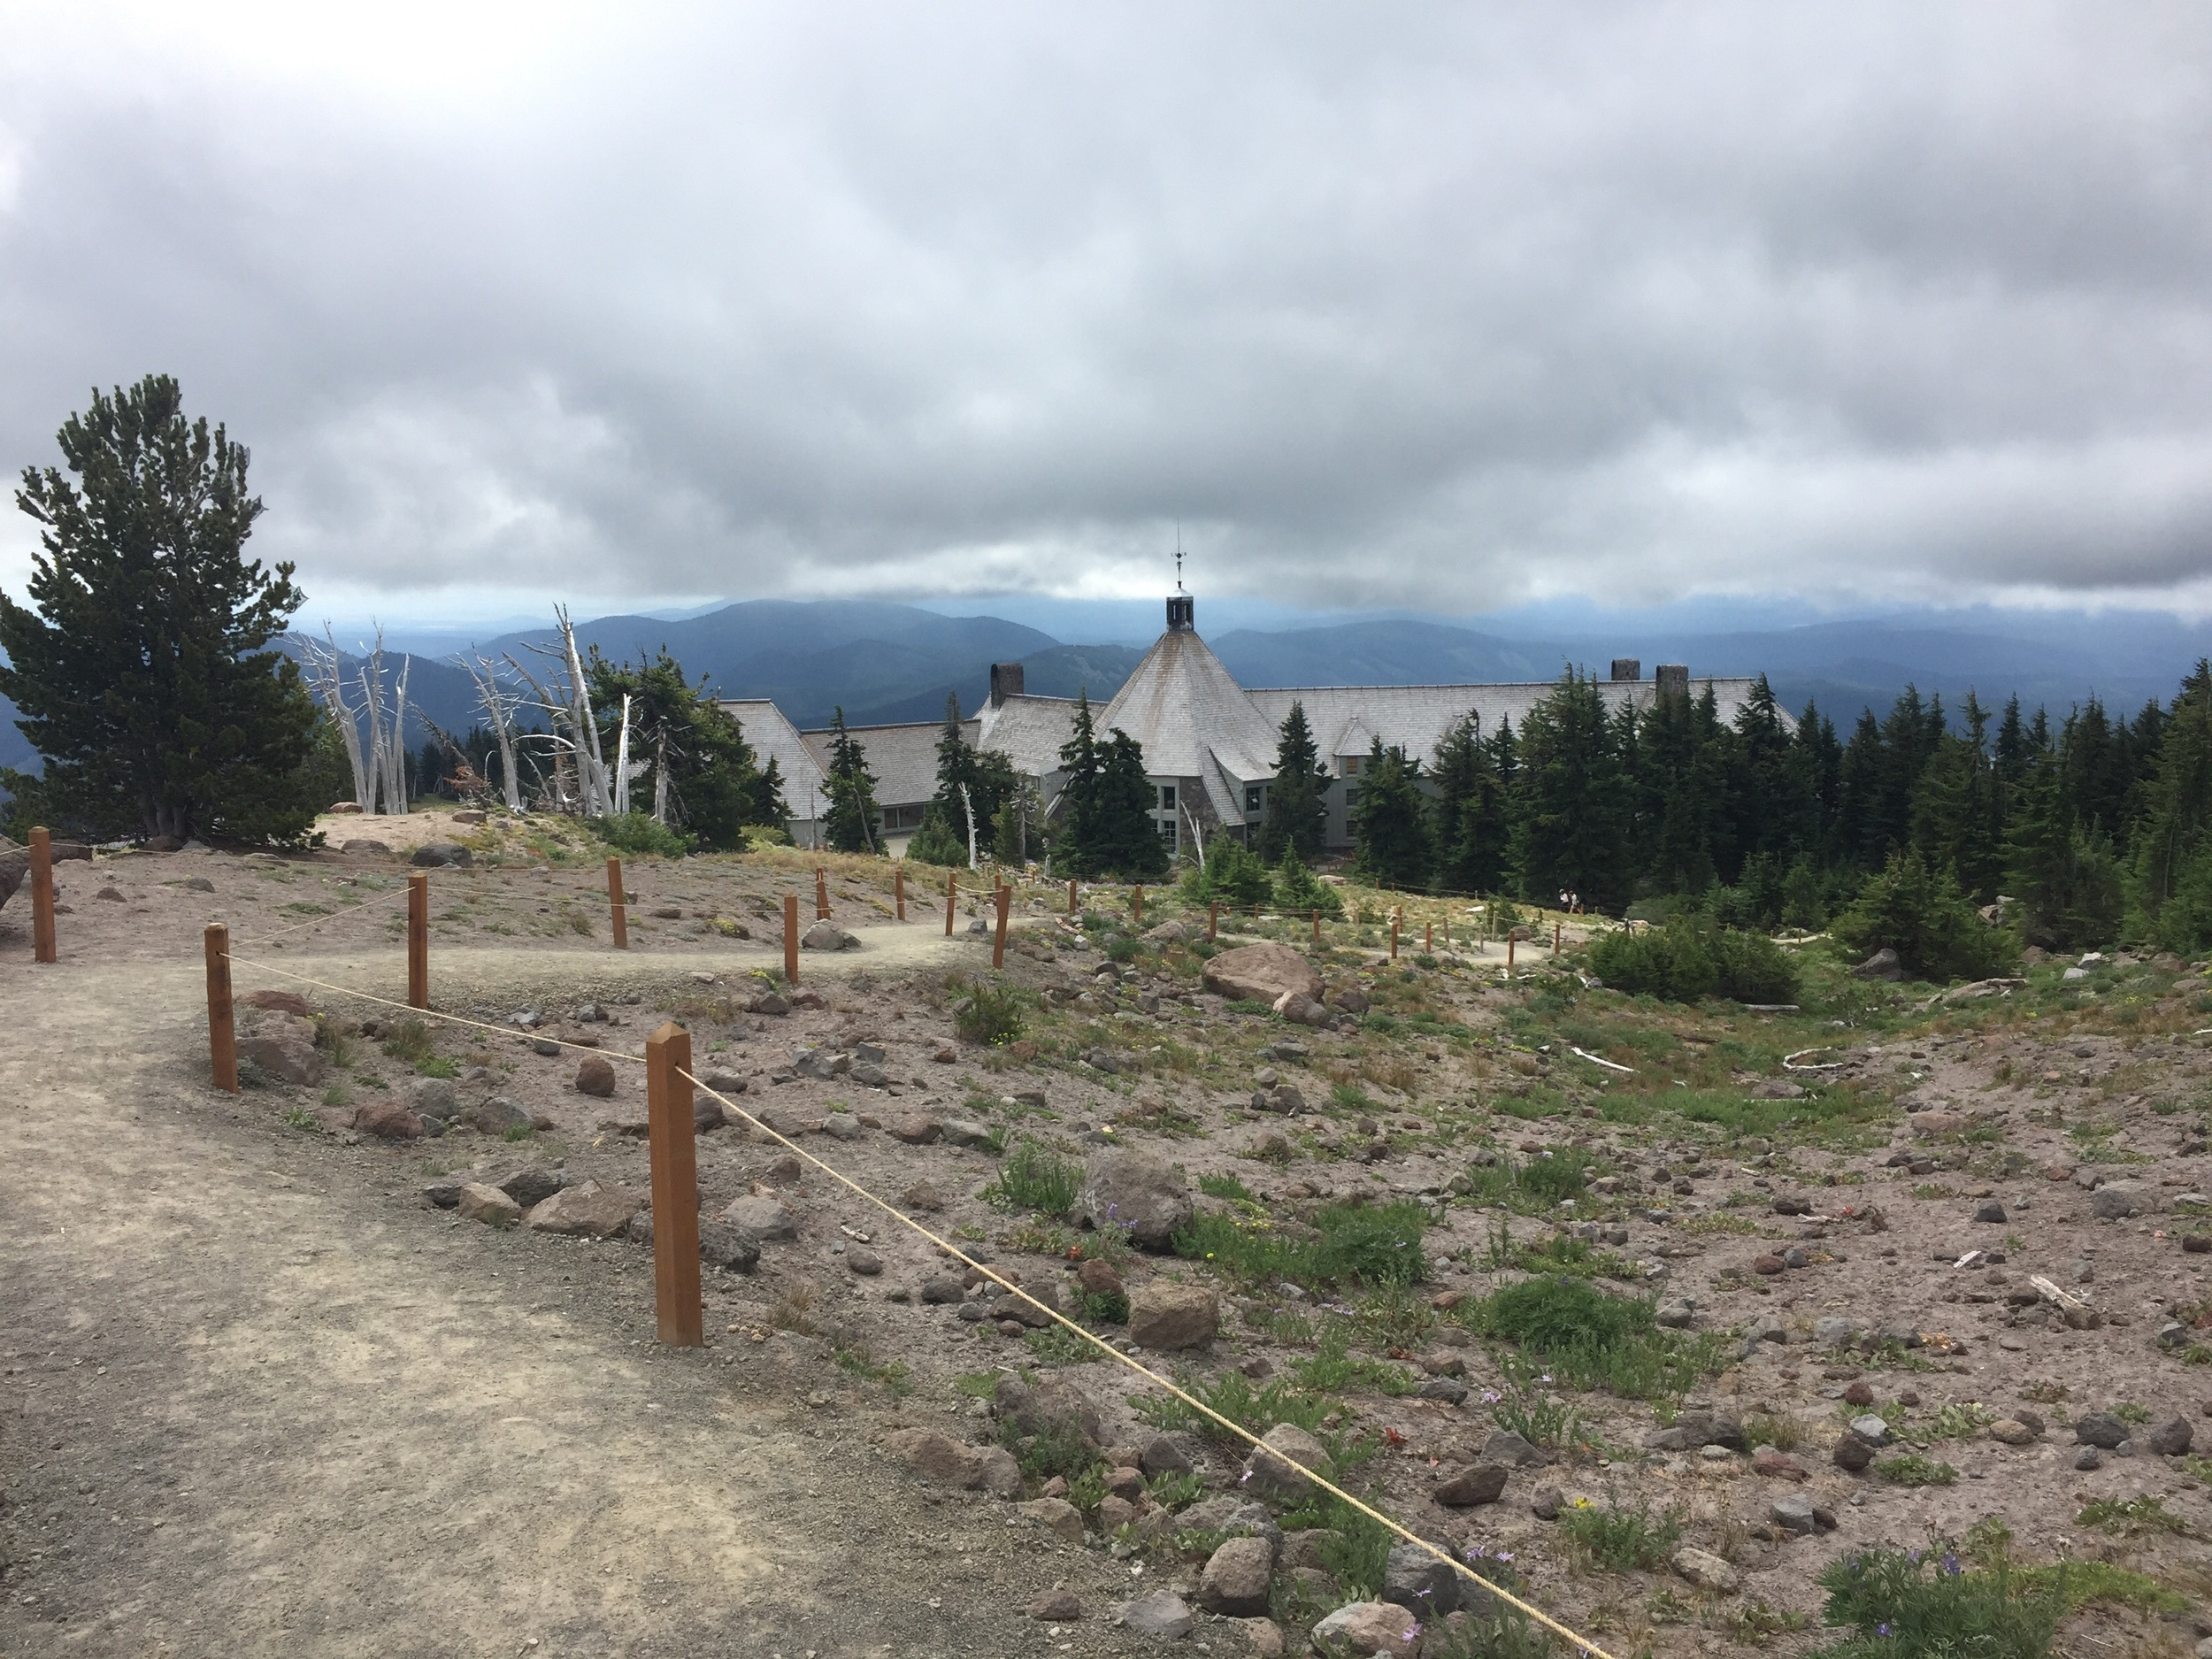 Coming into Timberline Lodge on a stormy August day